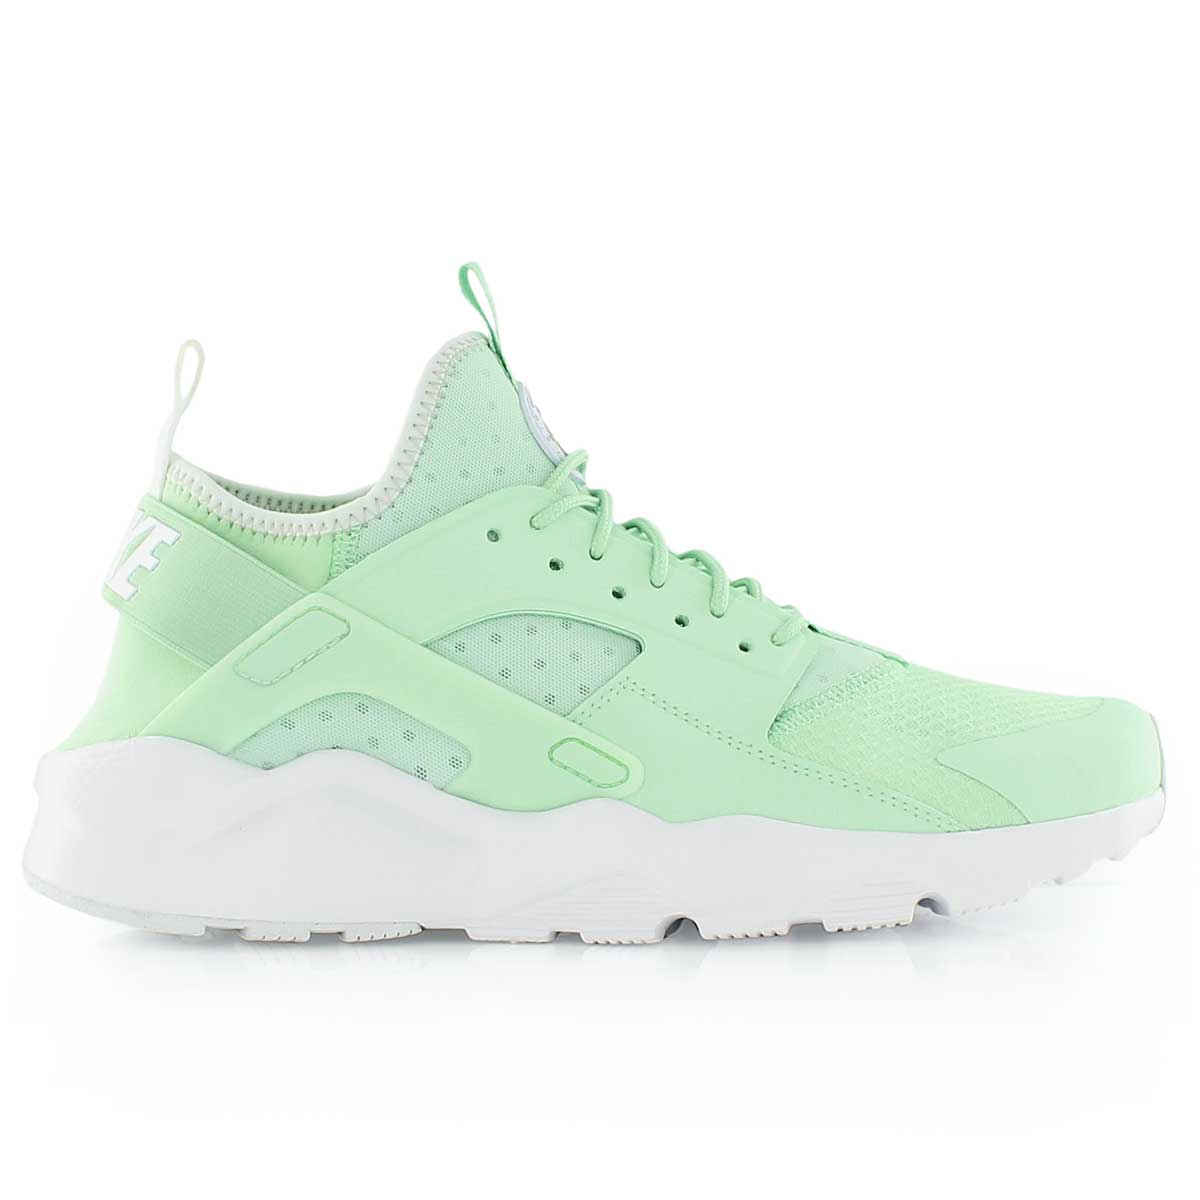 finest selection 150af 0af38 Nike Chaussures Athlétiques Couleur Vert Fresh Mint Pale Grey-White Taille  44.5